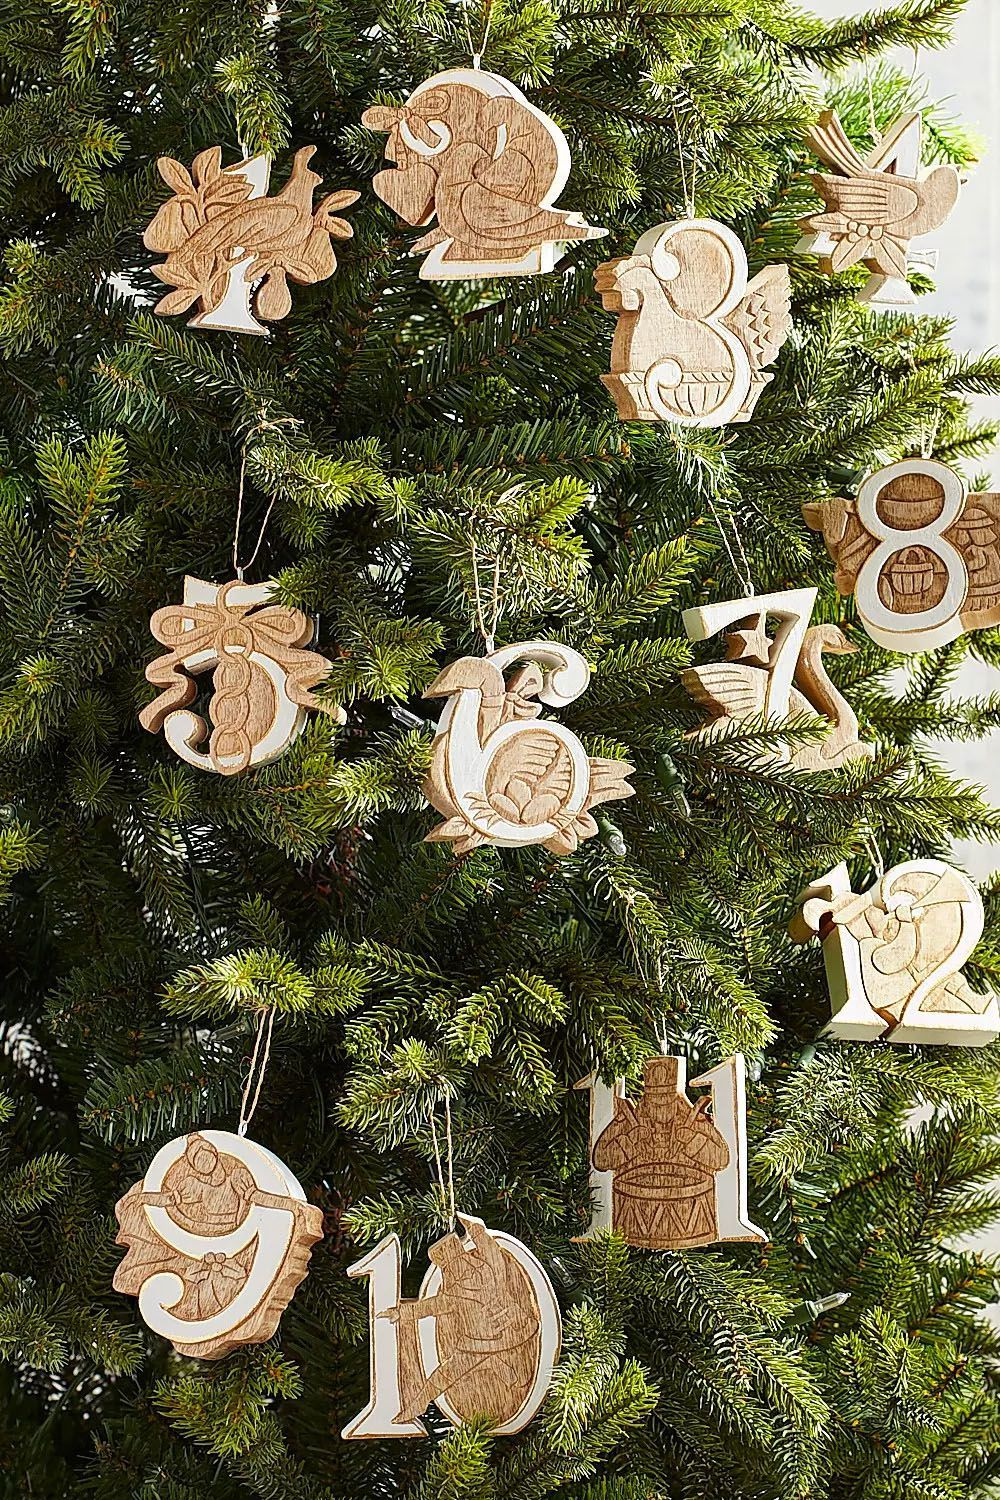 34 unique christmas tree decorations 2018 ideas for decorating your christmas tree - Wooden Christmas Tree Decorations